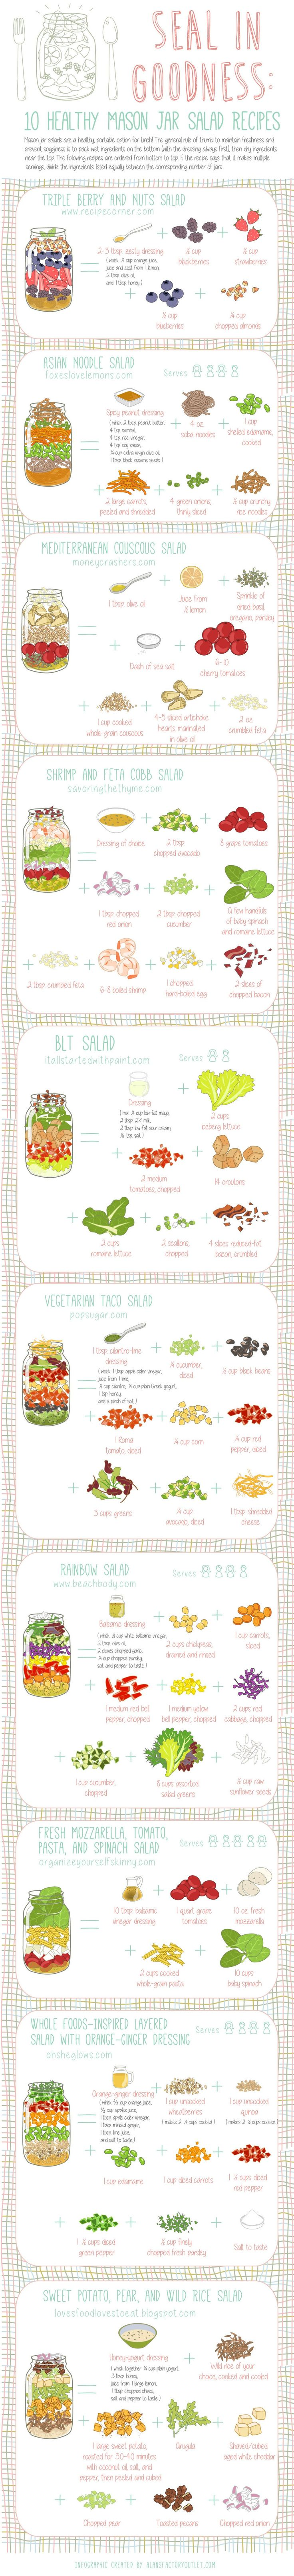 Mason jar salads are a healthy, portable option for lunch! It makes meal prep for the whole week a breeze.